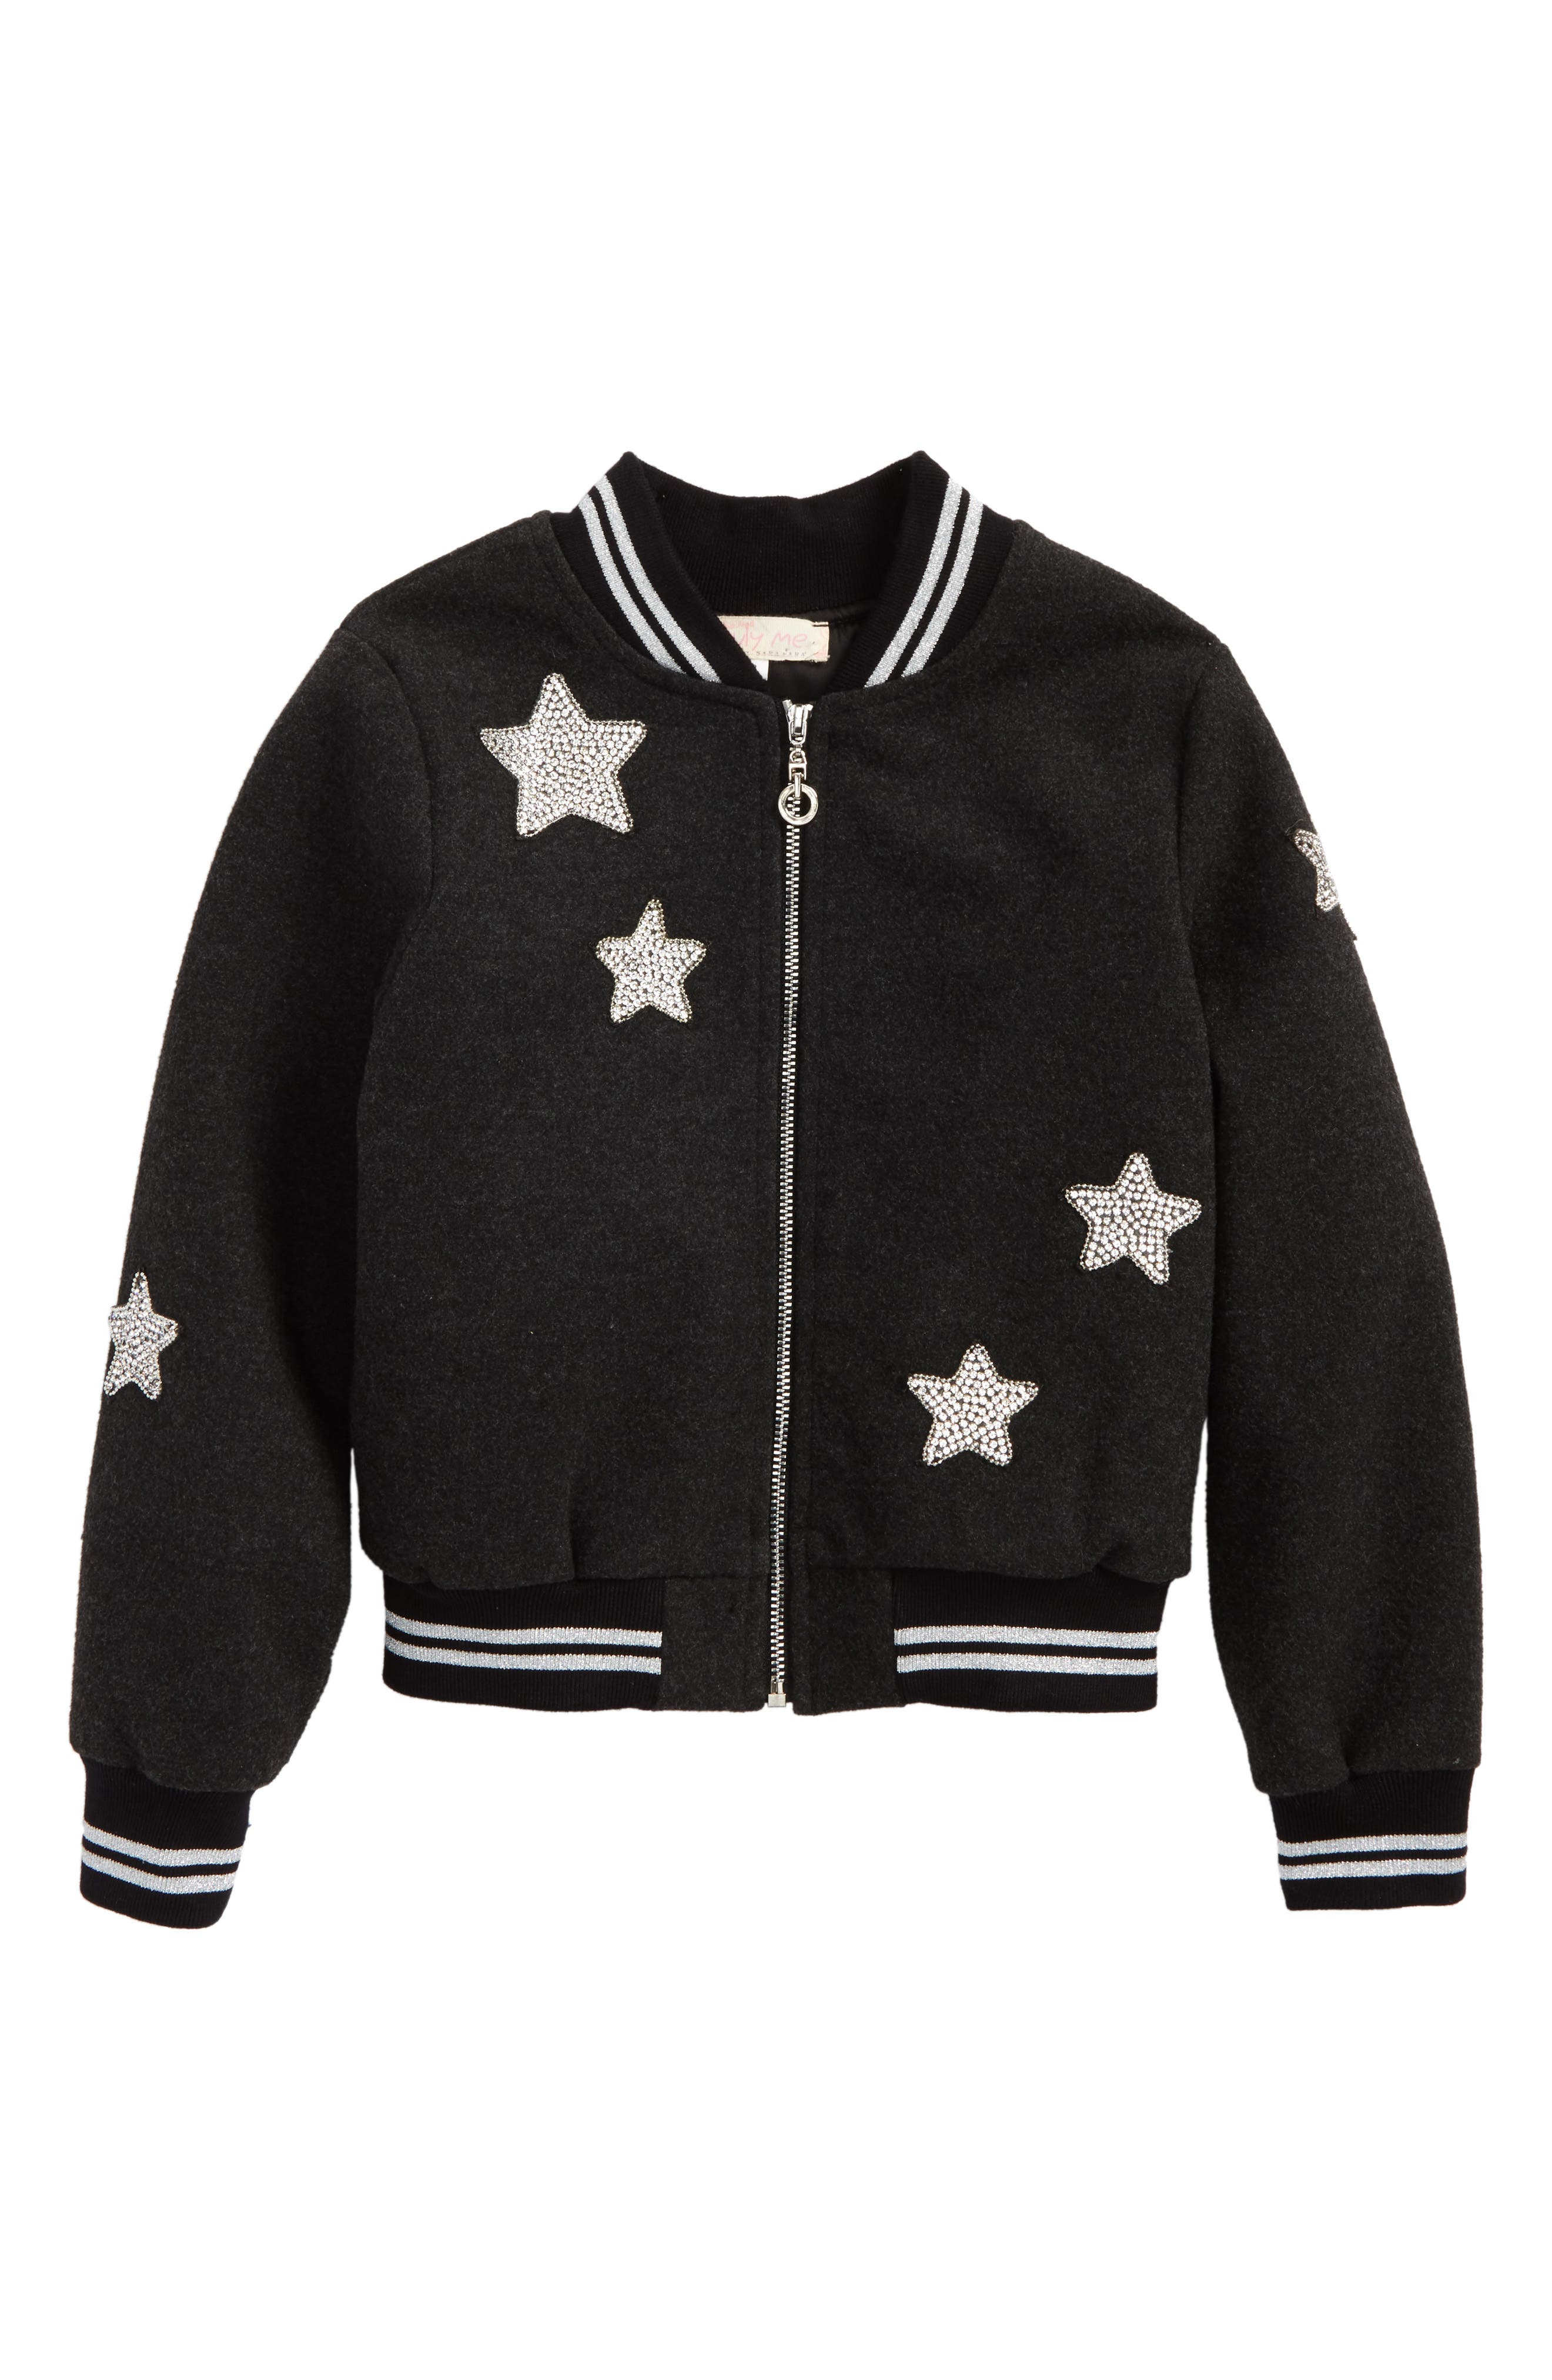 Star Patch Bomber Jacket,                             Main thumbnail 1, color,